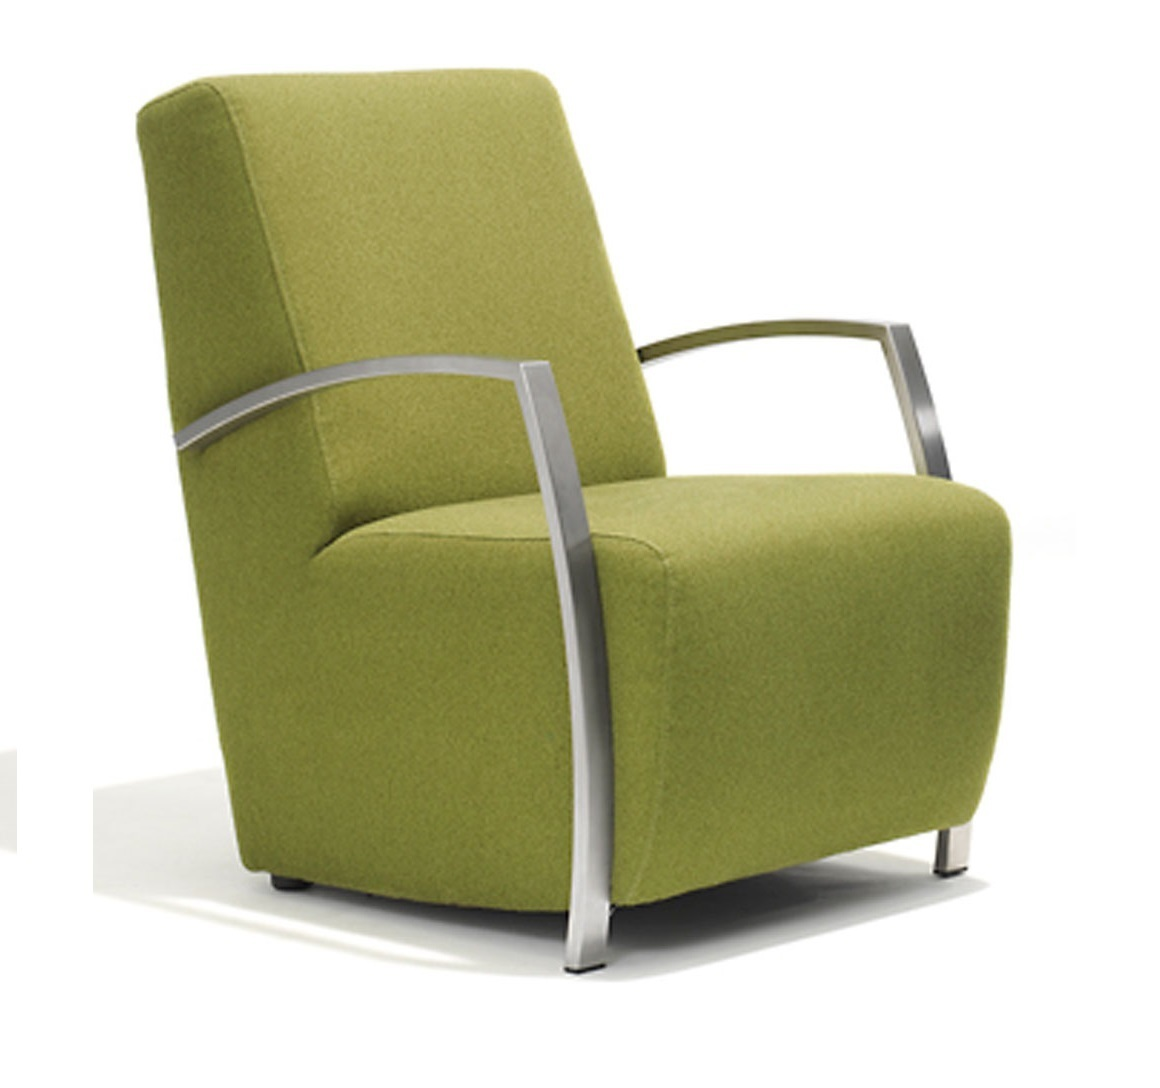 Fauteuil Canyon laag